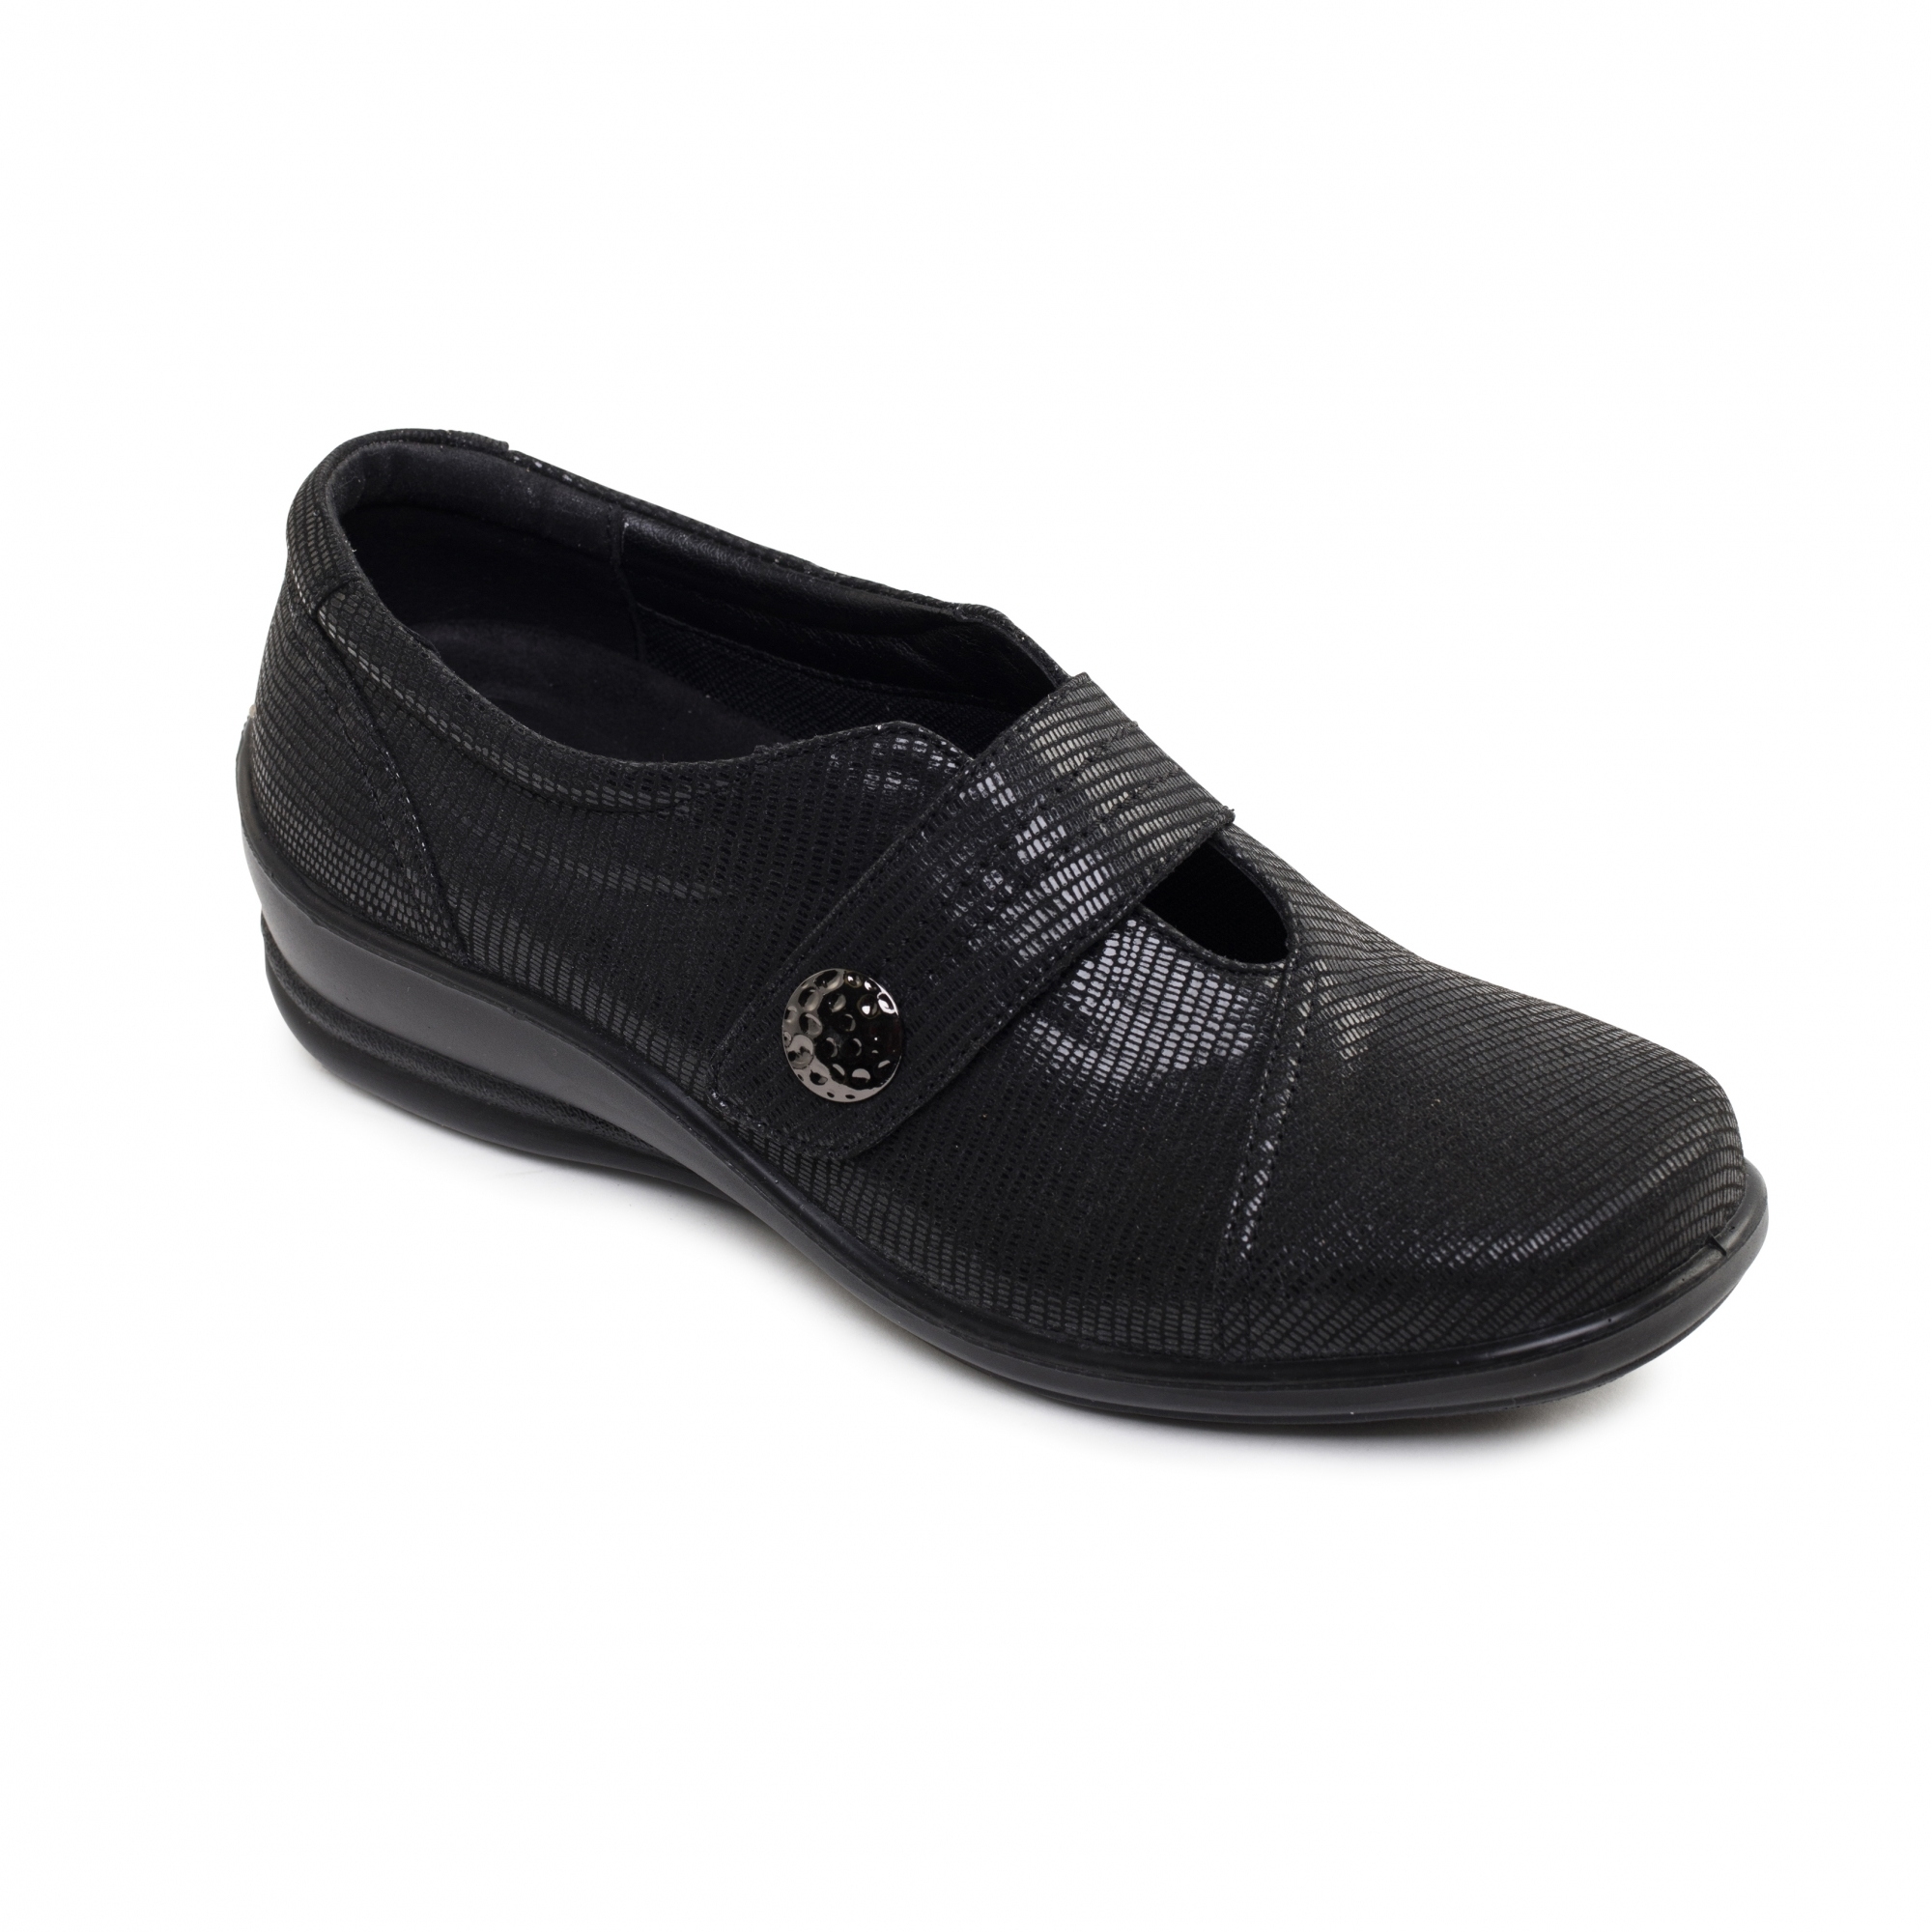 a and e shoes